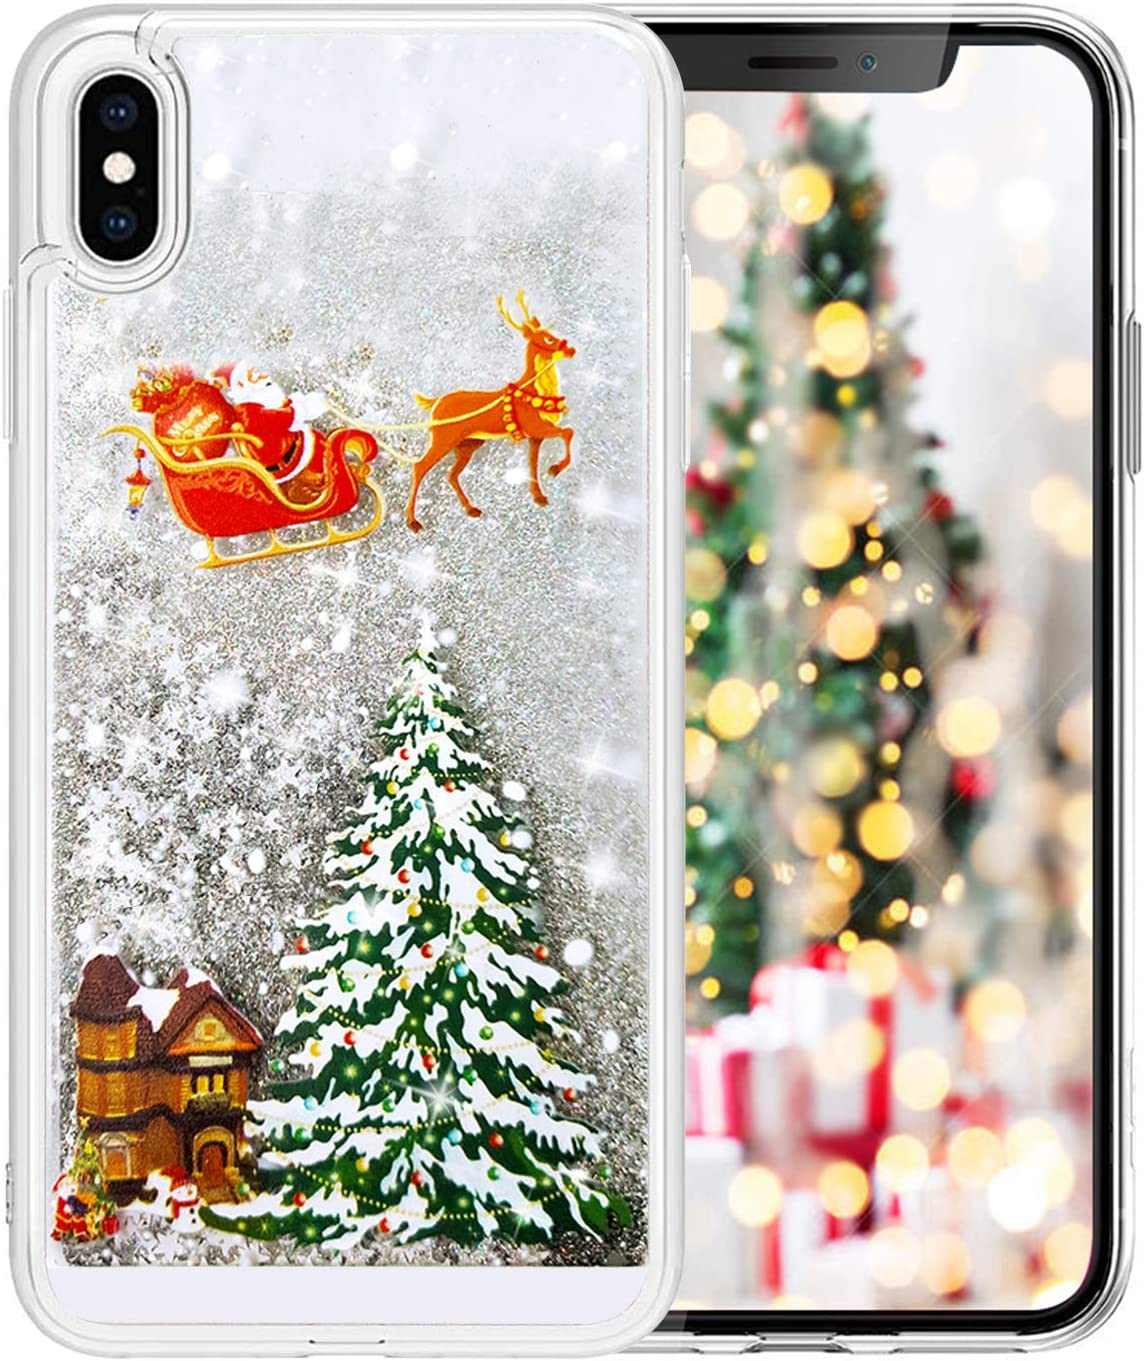 Fusicase for iPhone SE 2020 Christmas Case Liquid Glitter Merry Christmas Tree Rudolph Giraffe Pattern Flowing Floating Quicksand Luxury Bling Shiny Sparkle Case for iPhone 8